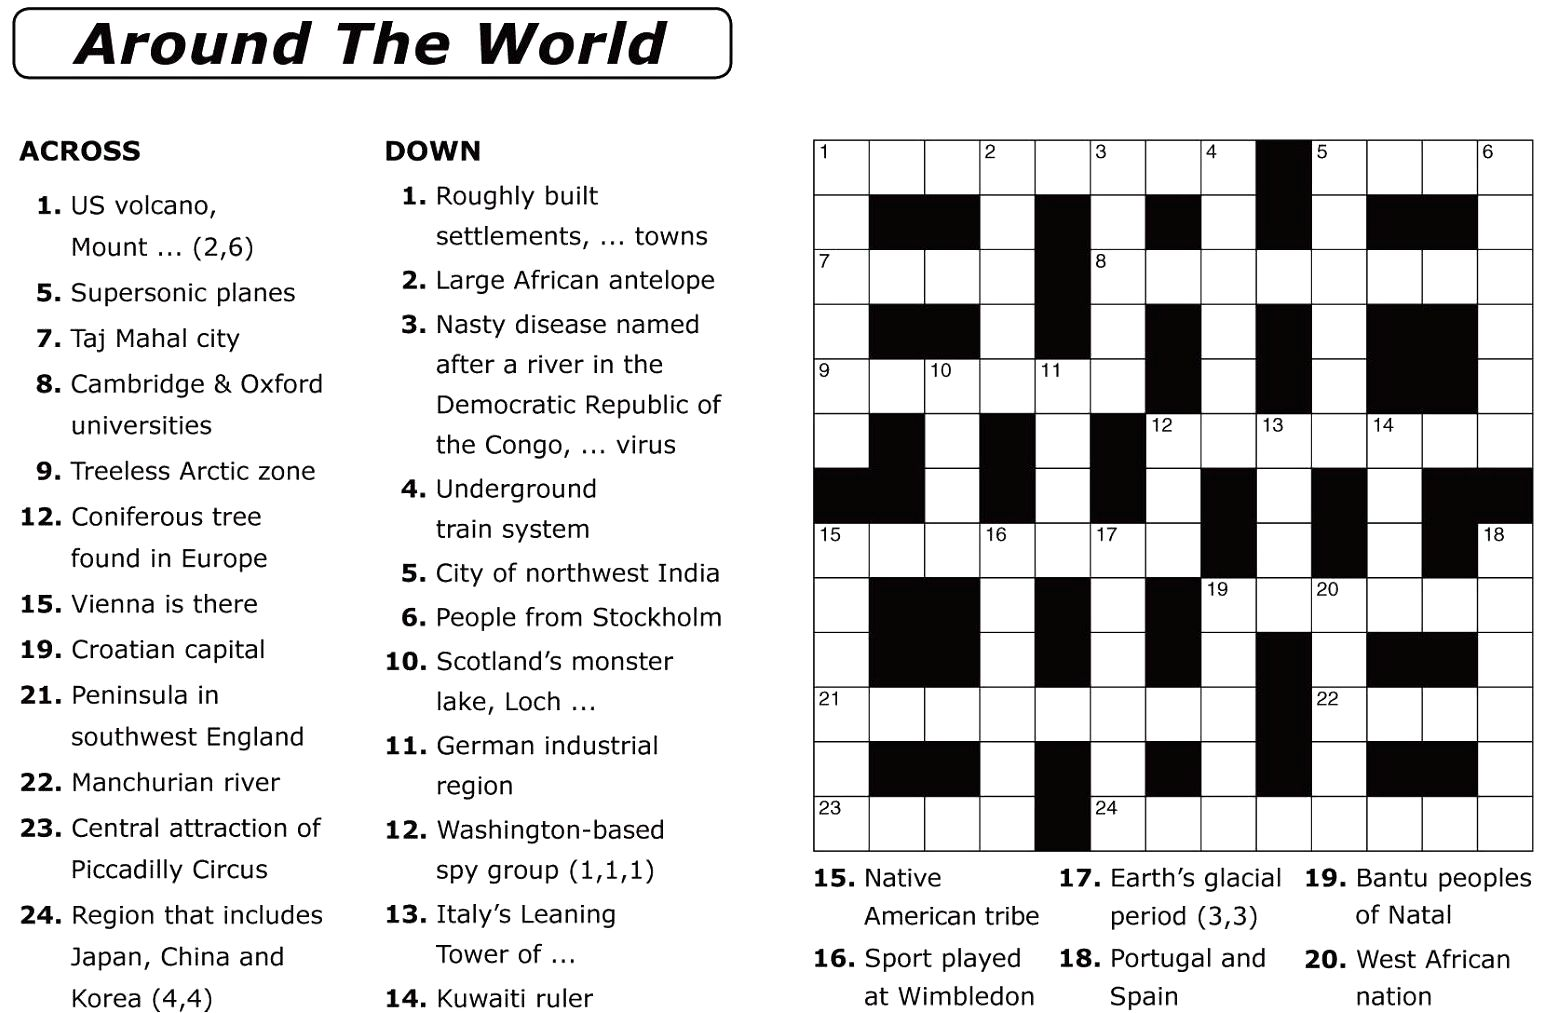 image about Printable Bible Crossword Puzzles named Basic Crossword Puzzles Printable Every day Template